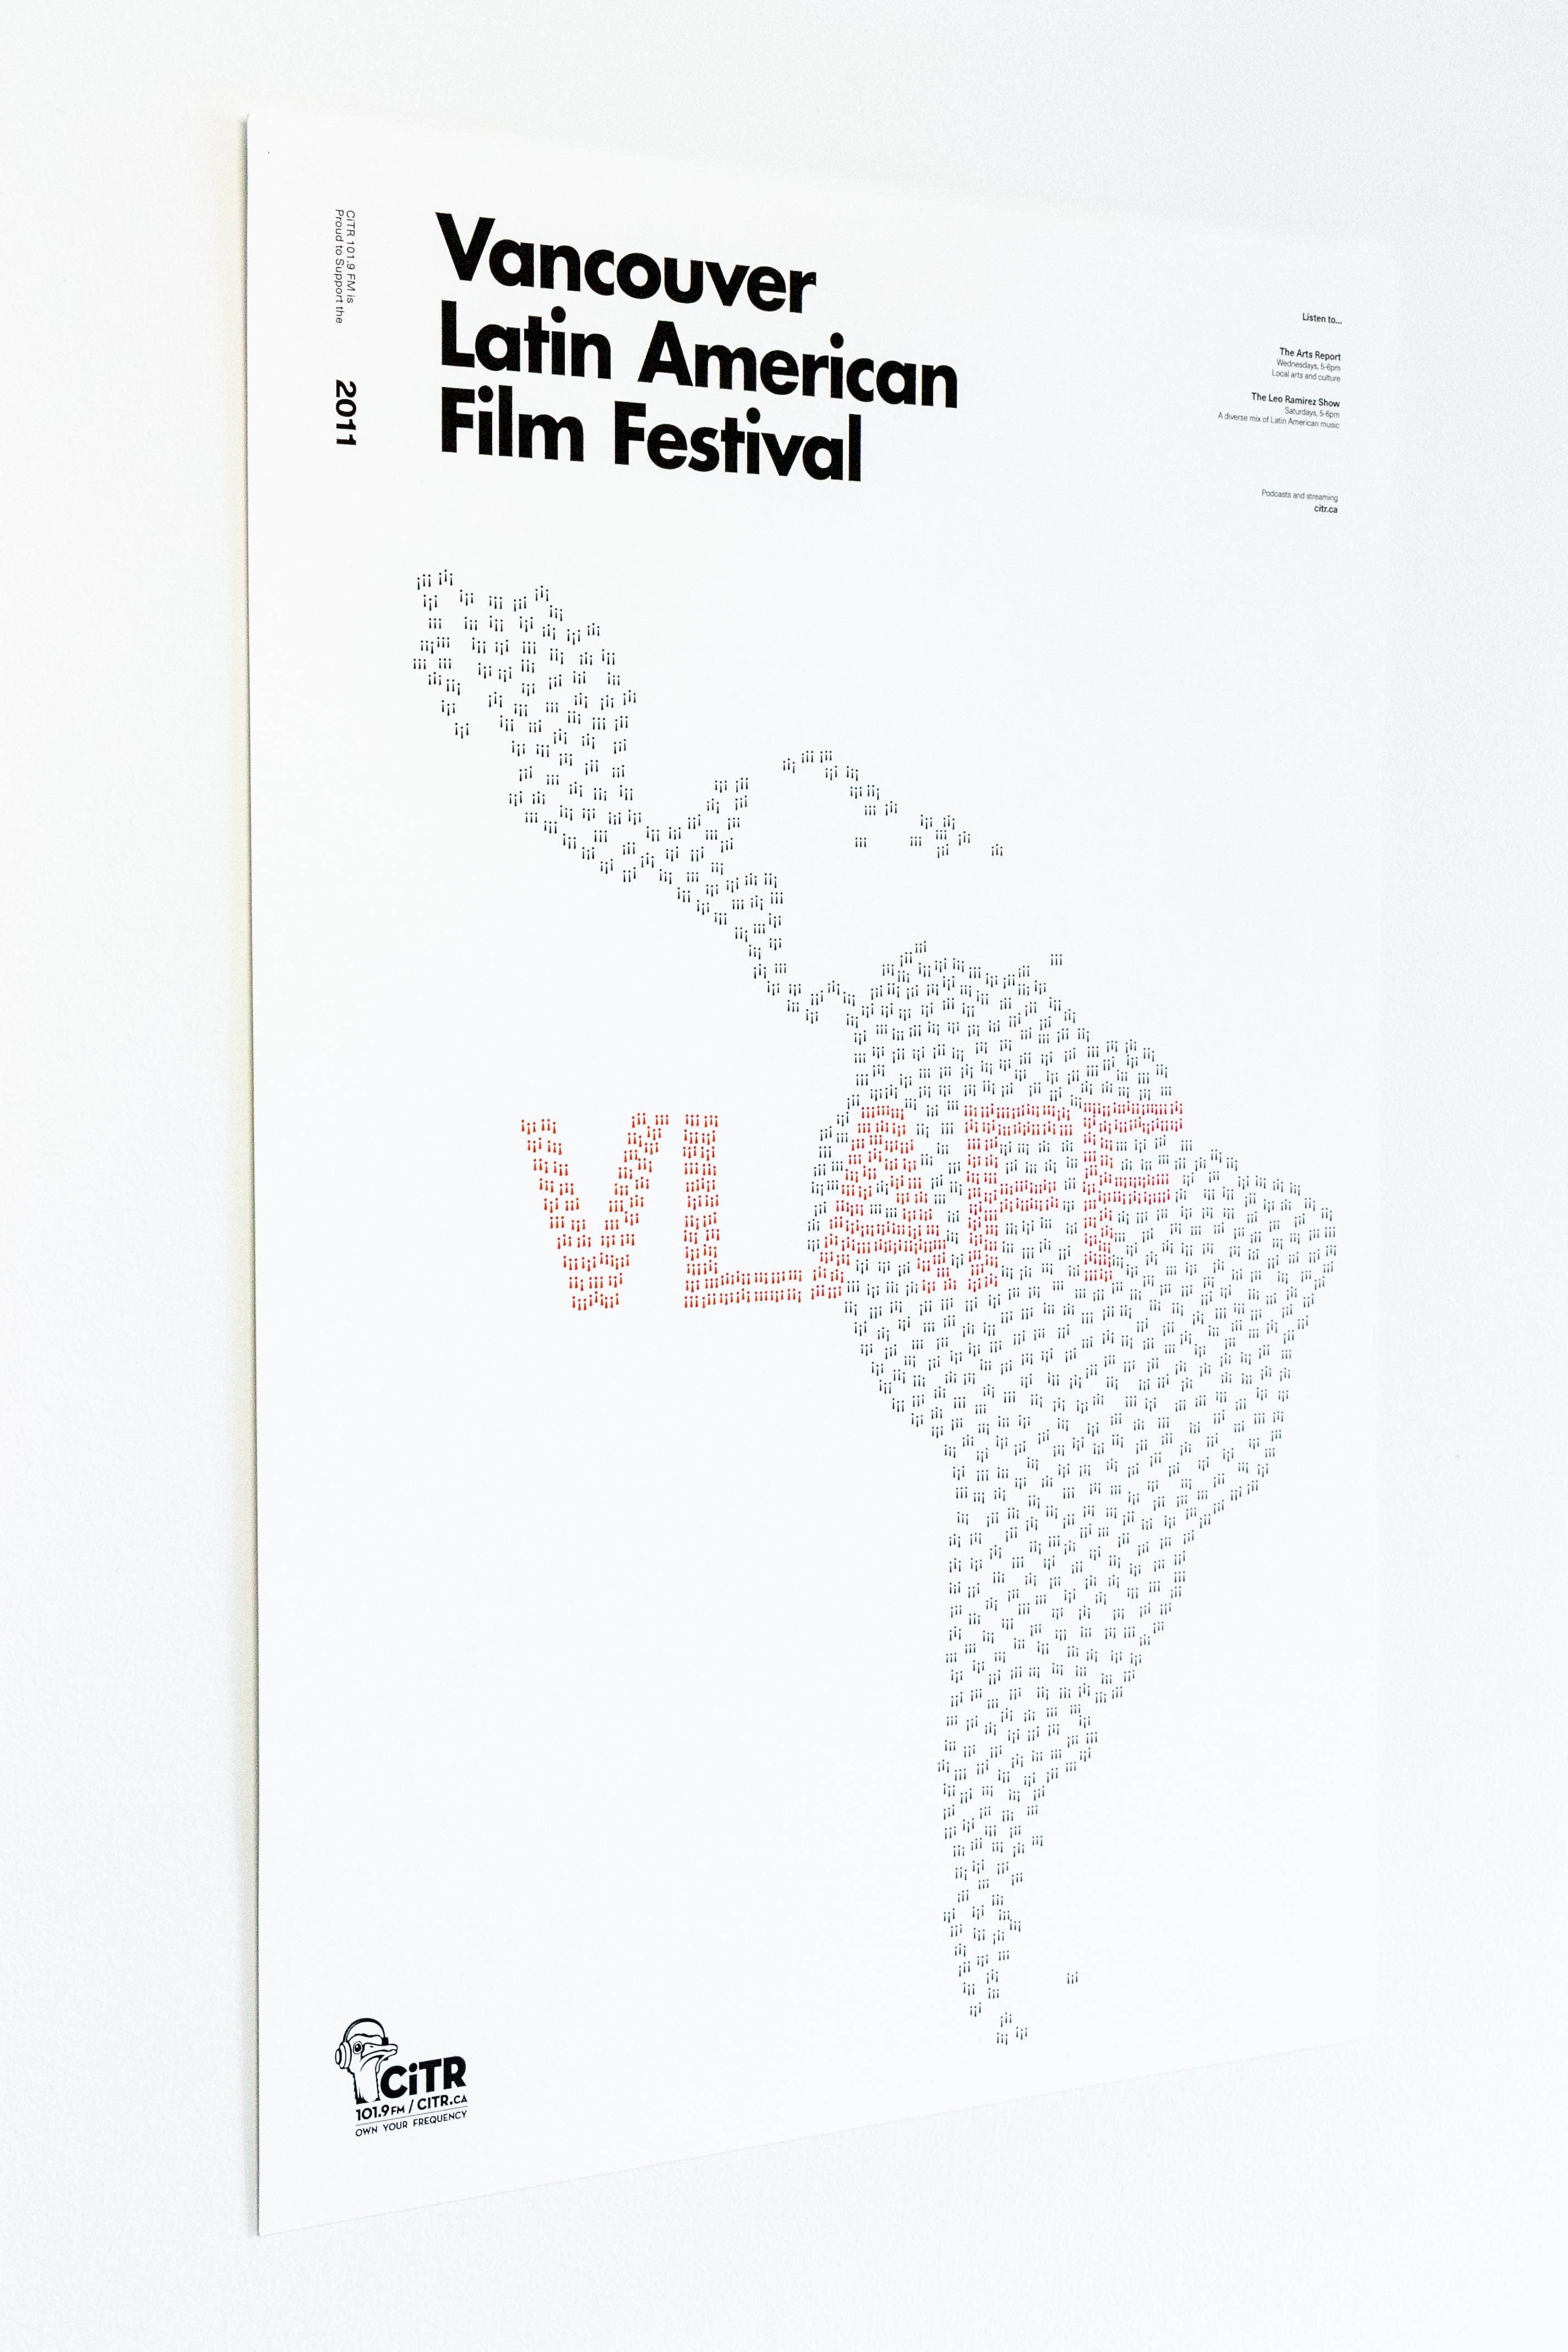 Poster using exclamation marks to form a shape of Latin America screaming out VLAFF — by Yagnyuk.